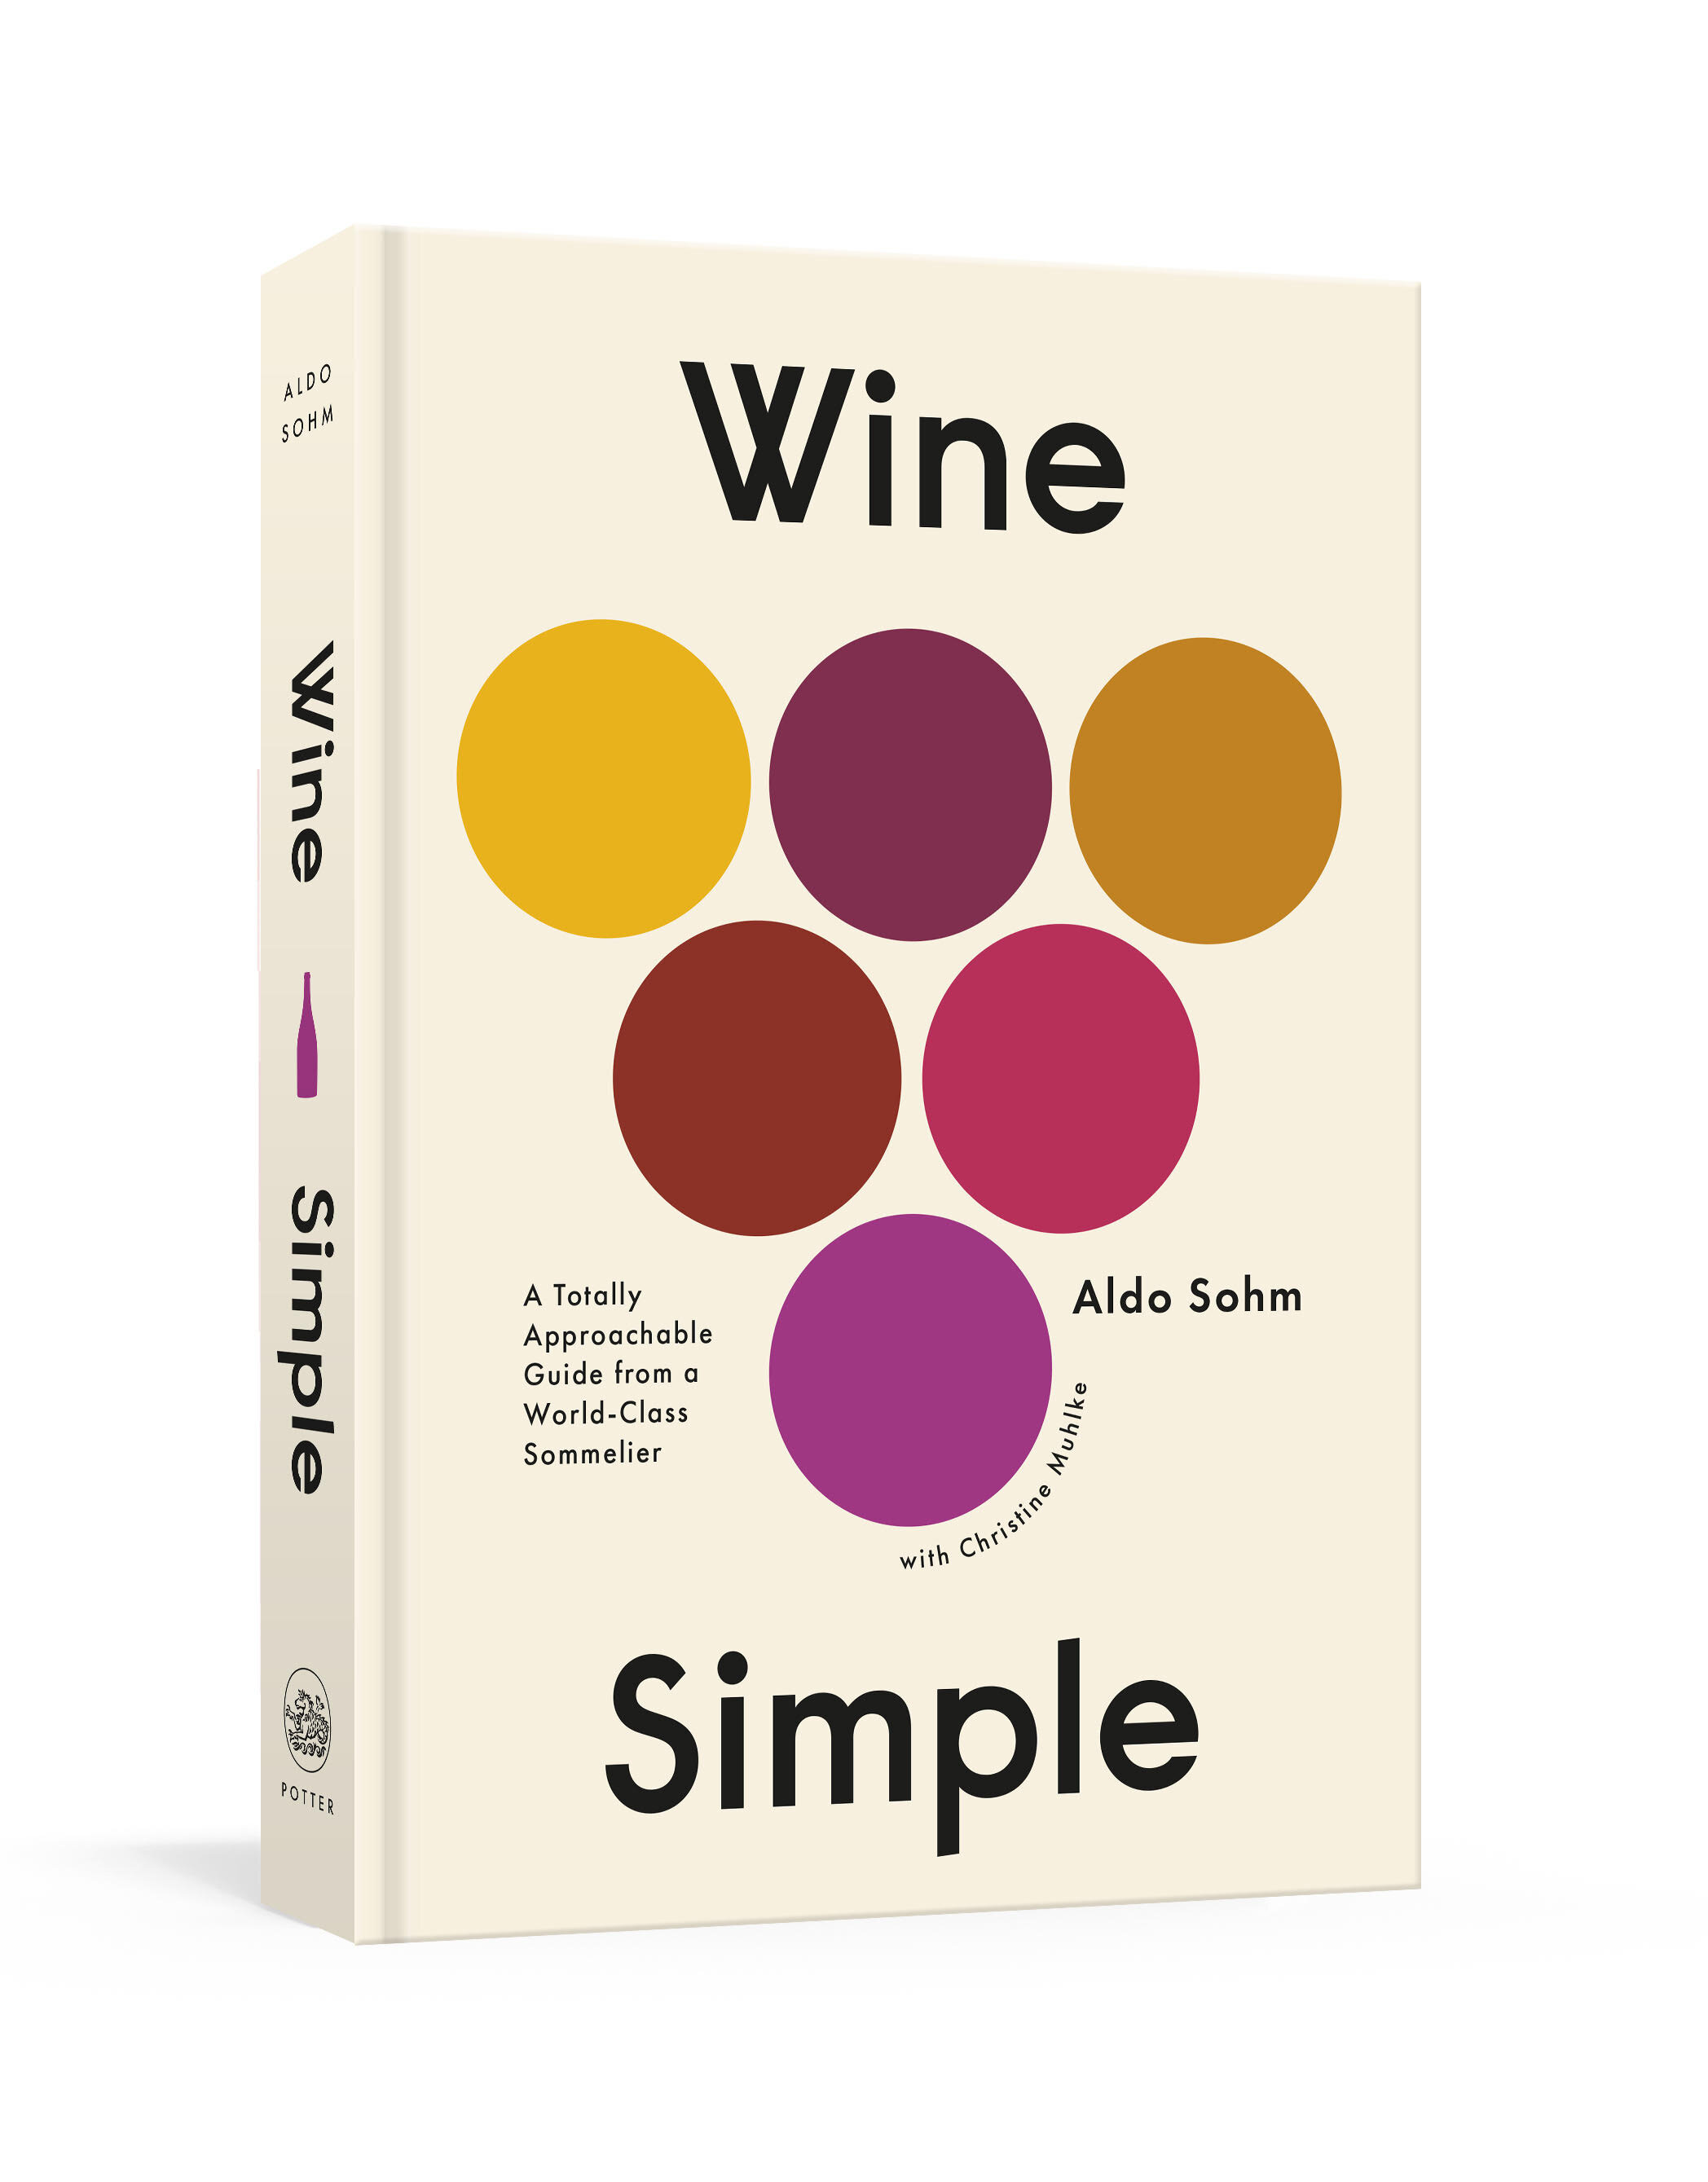 Wine Simple - A Totally Approachable Guide from a World-Class Sommelierby Aldo Sohm with Christine MuhlkeFrom the world-renowned sommelier Aldo Sohm, a dynamic, essential wine guide for a new generation